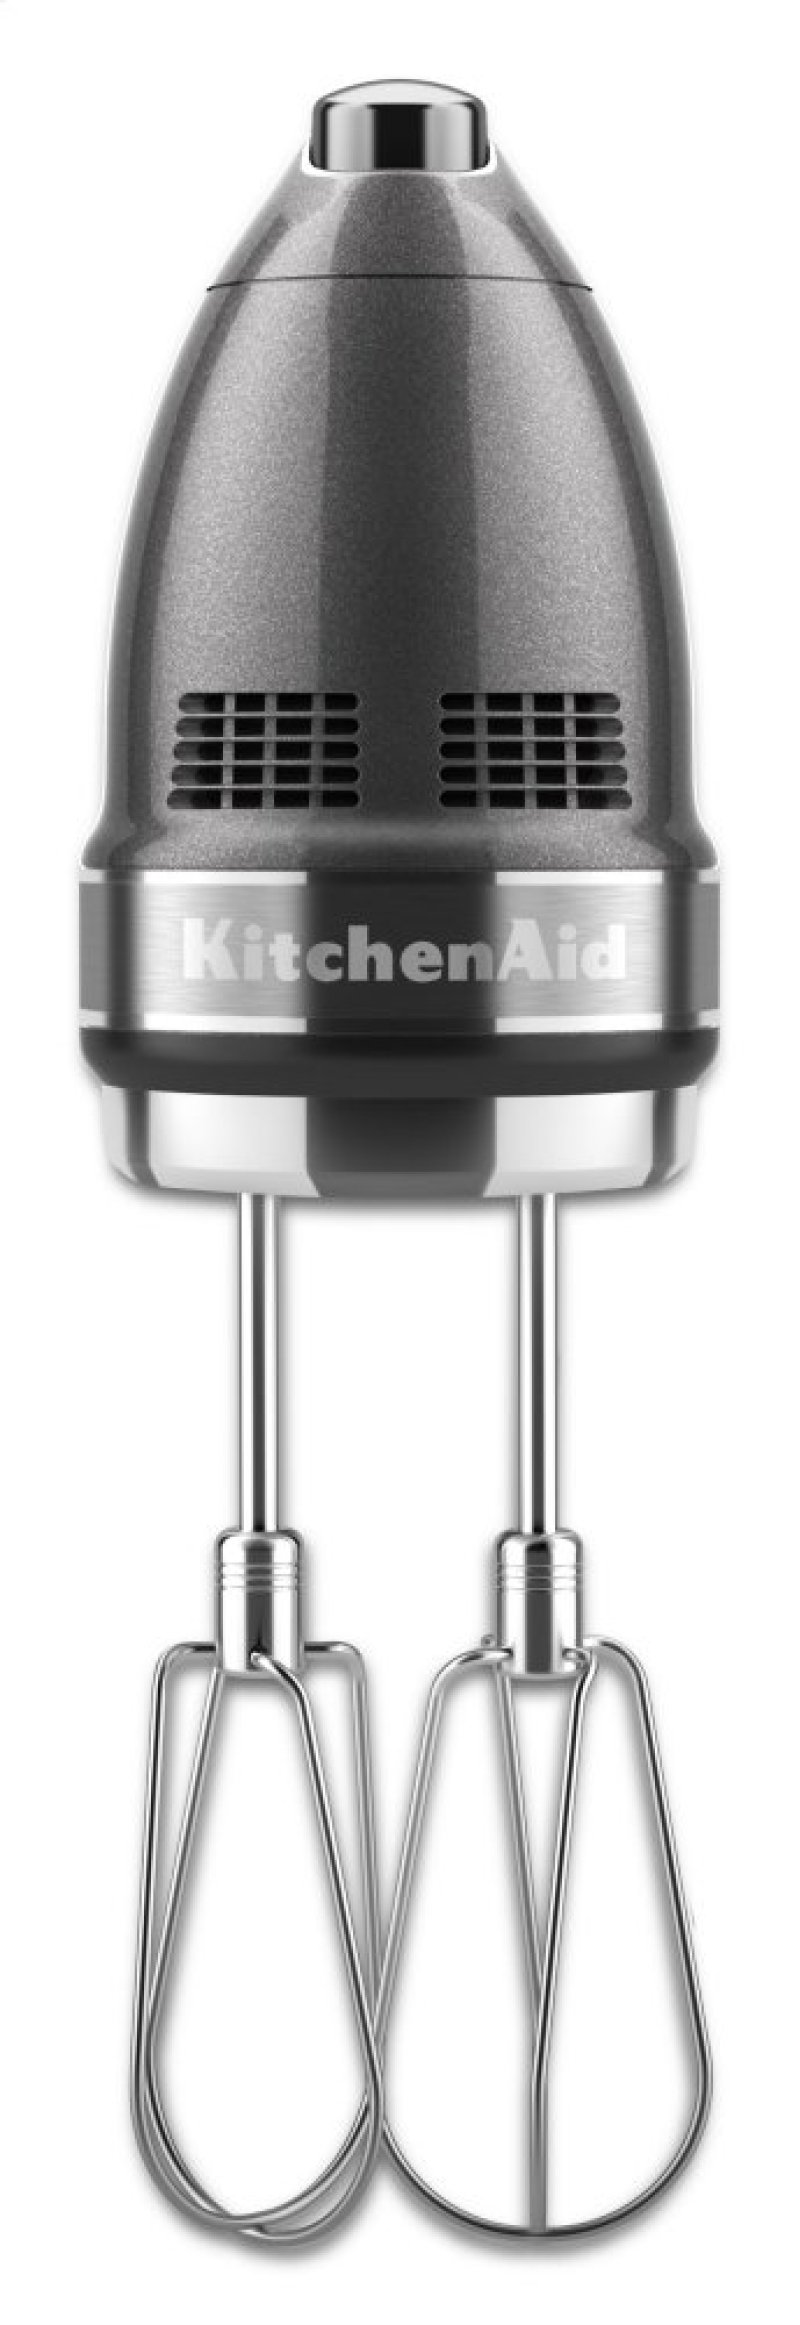 Khm7210qg In Liquid Graphite By Kitchenaid In Richardson Tx 7